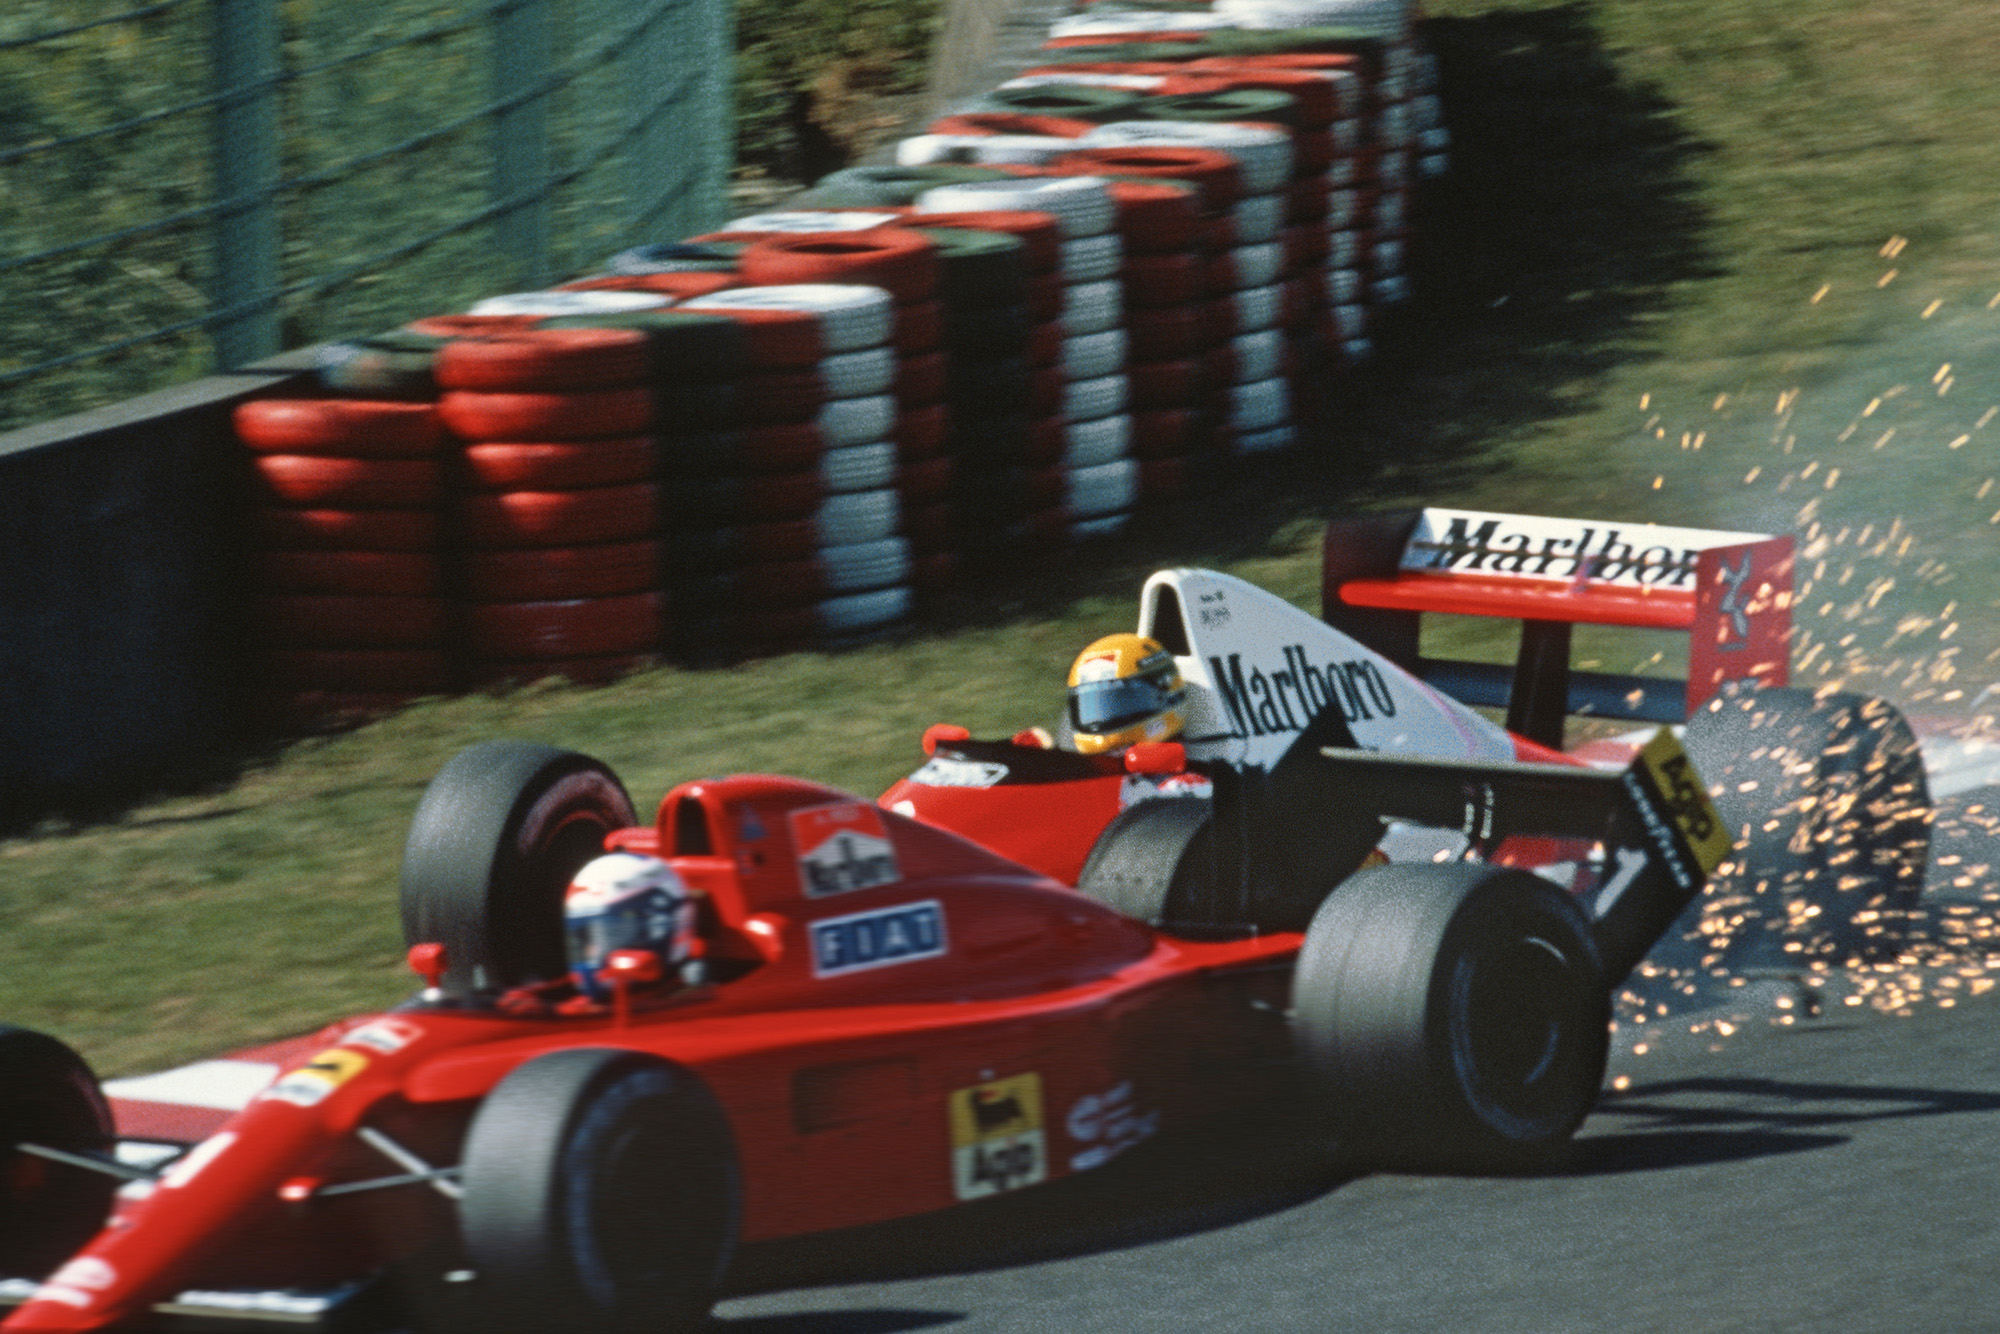 Ayrton Senna hits Alain Prost at the start of the 1990 Japanese Grand Prix